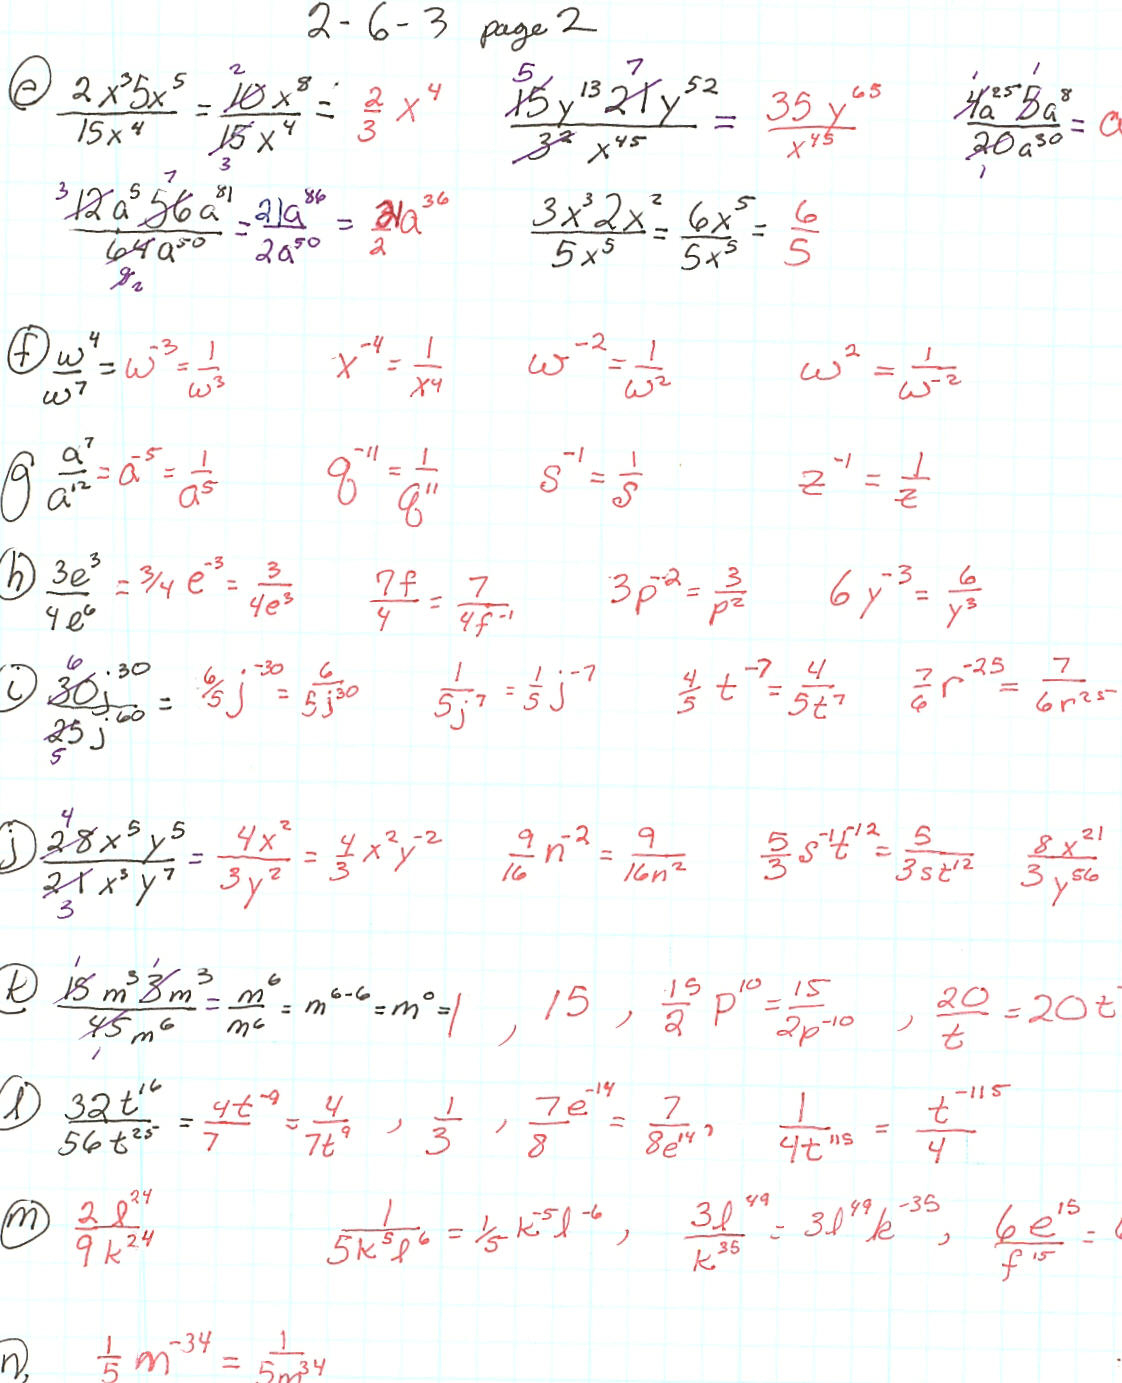 Unit 7 Exponent Rules Worksheet 2 | Kids Activities